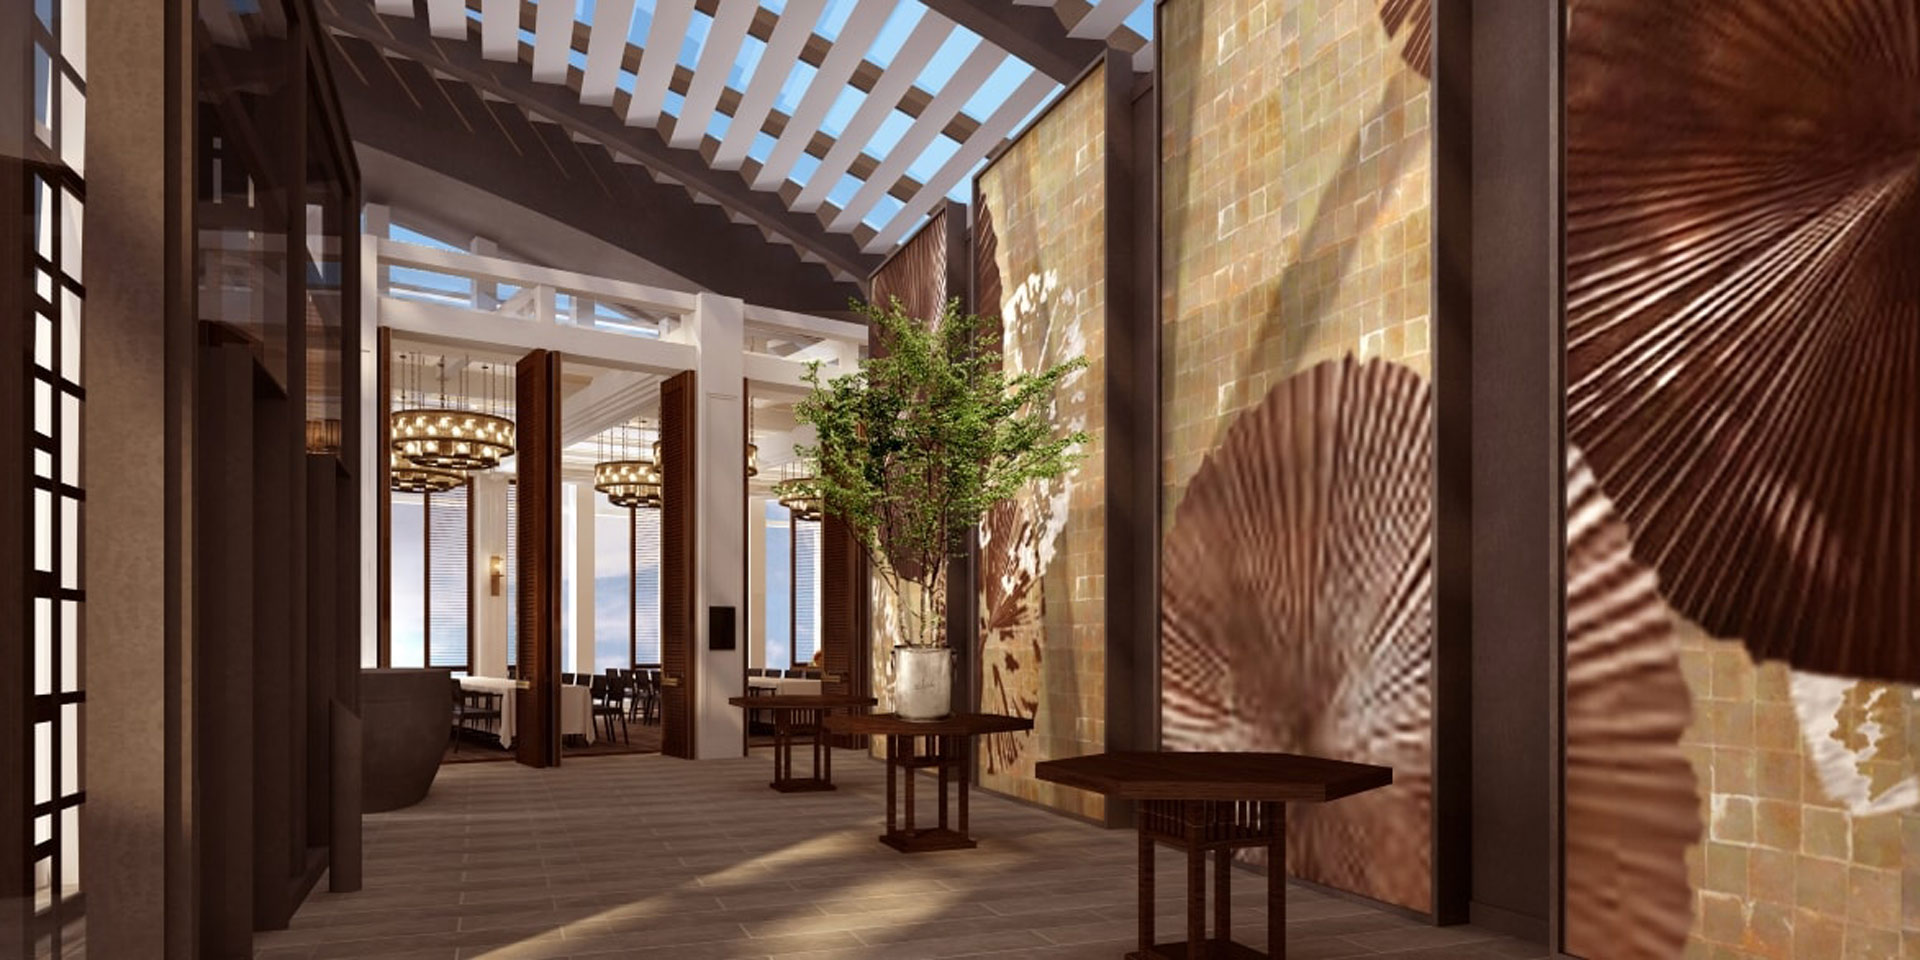 Rosewood opens first hotel in Southeast Asia